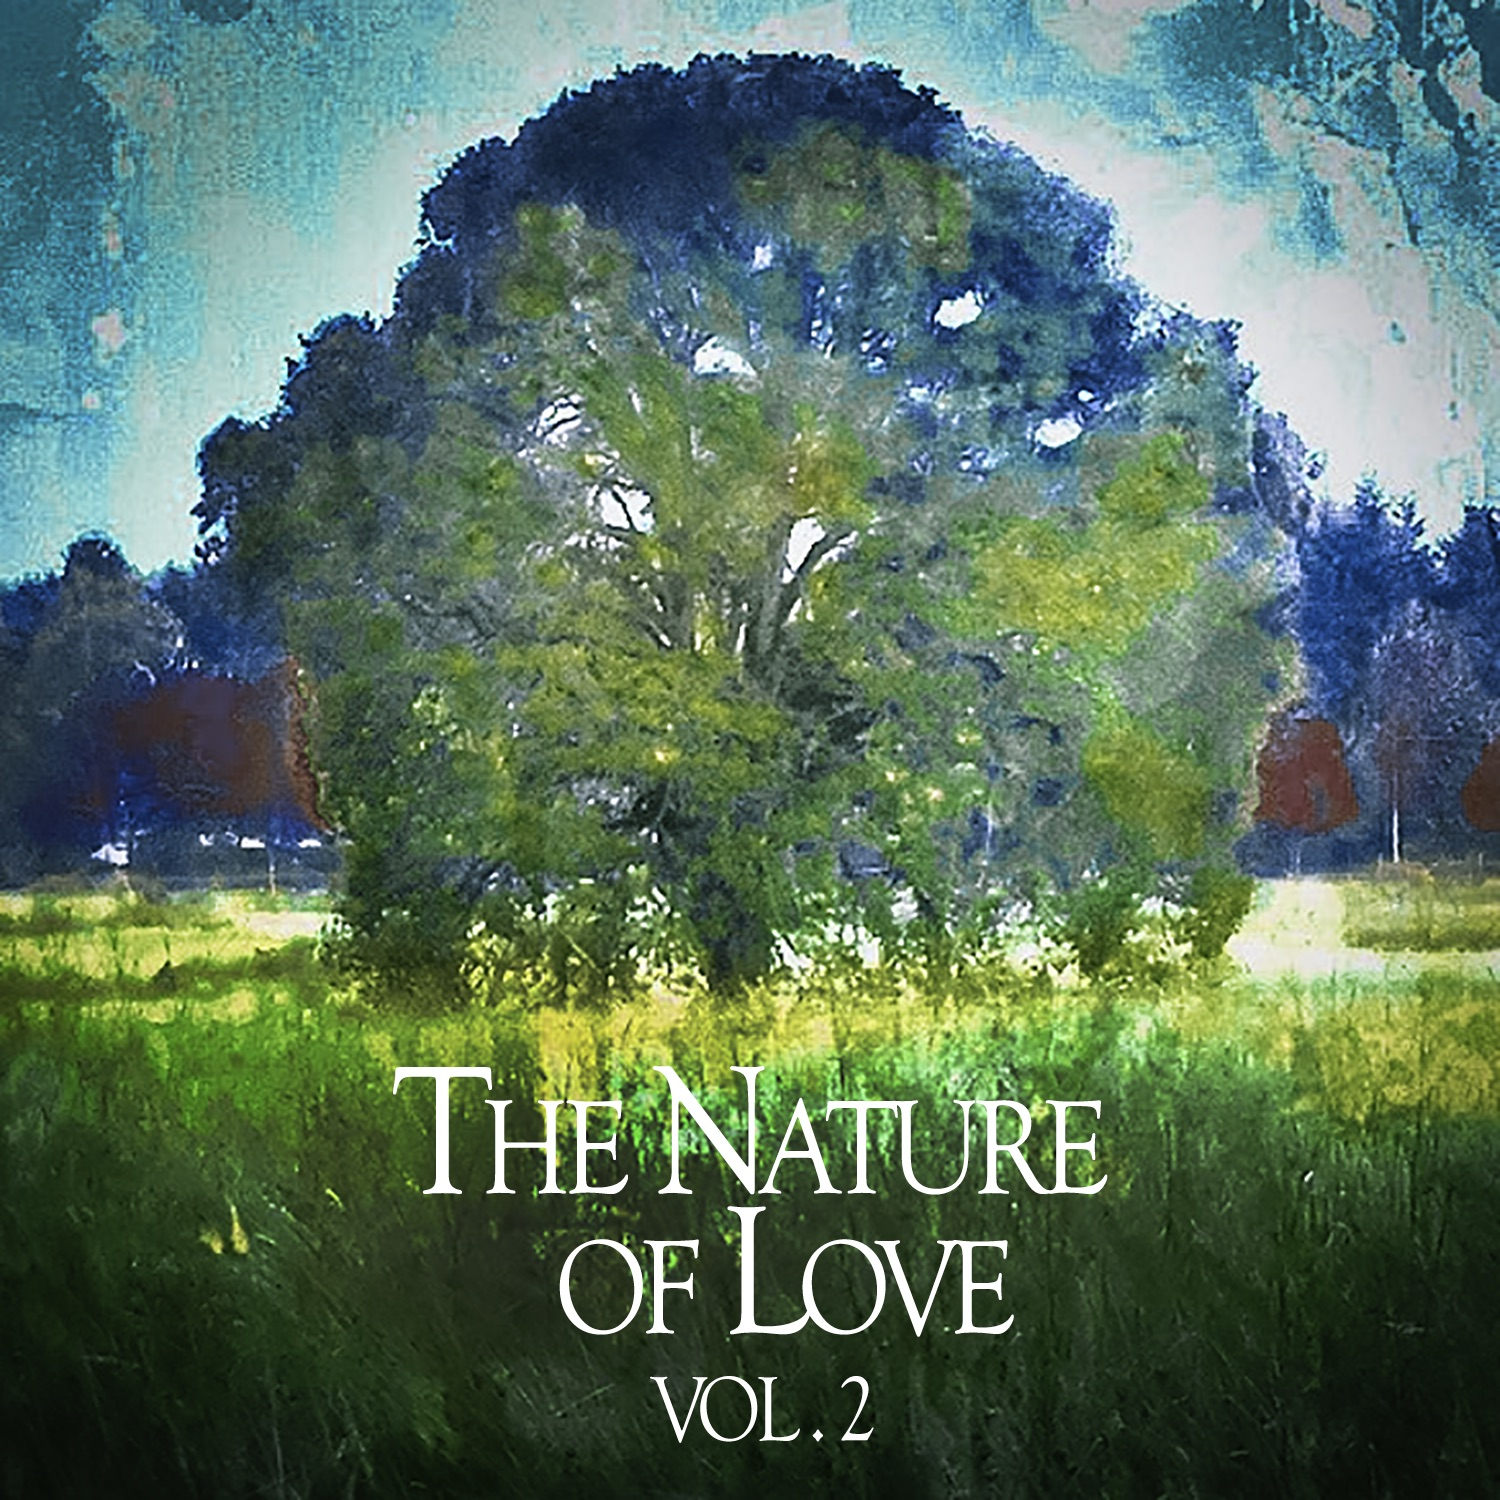 The Nature of Love, Vol. 2